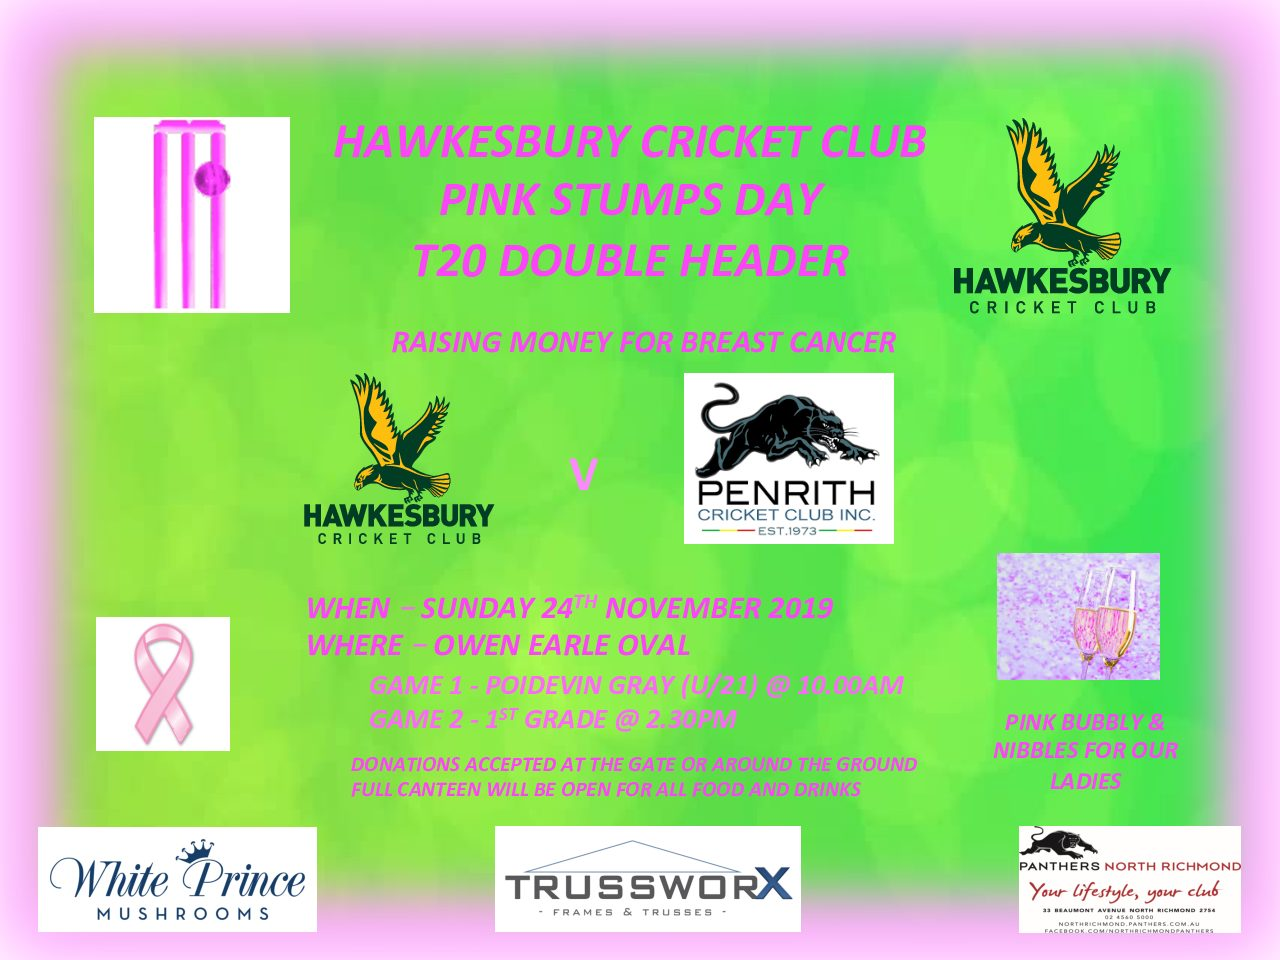 PINK STUMPS DAY T20 AT OWEN EARLE OVAL THIS SUNDAY 24th NOVEMBER v PENRITH